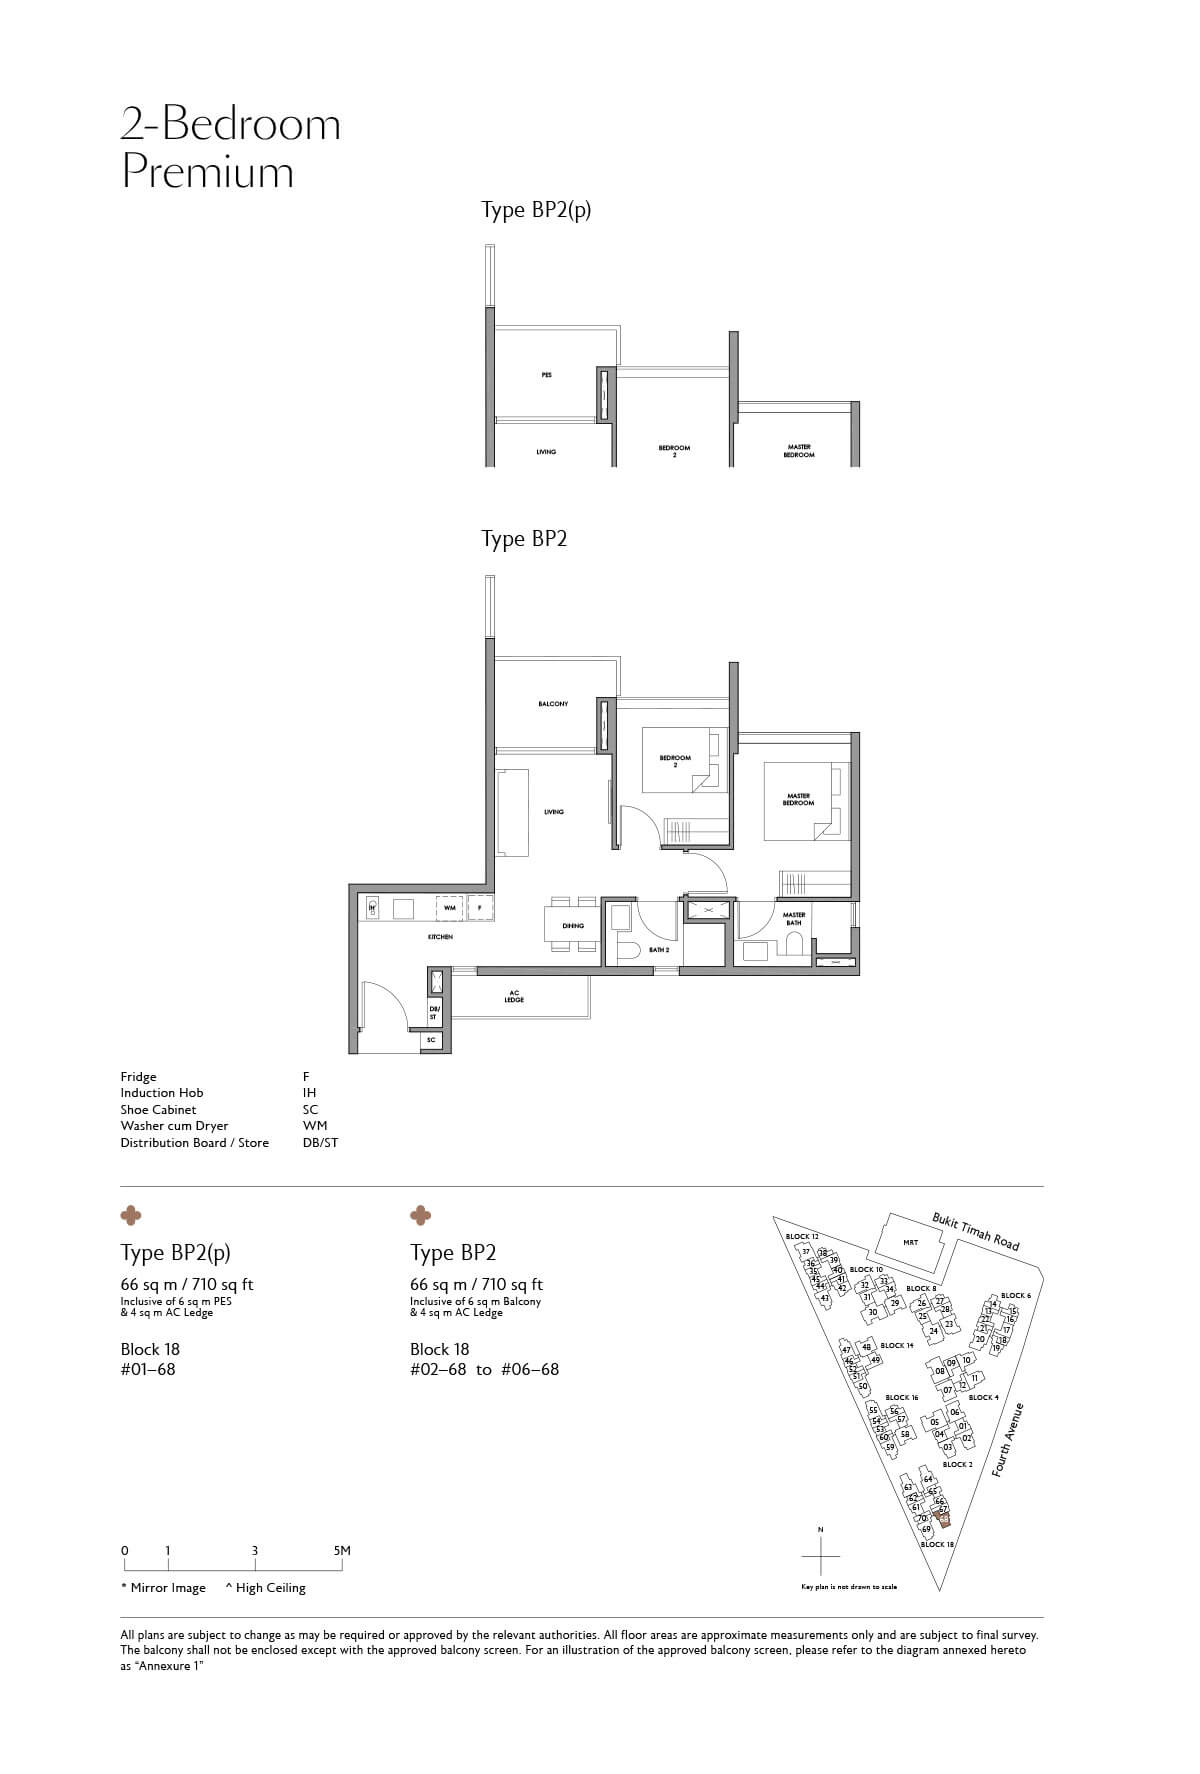 Fourth Avenue Residences Floor Plan 2 Bedroom Premium Type BP2